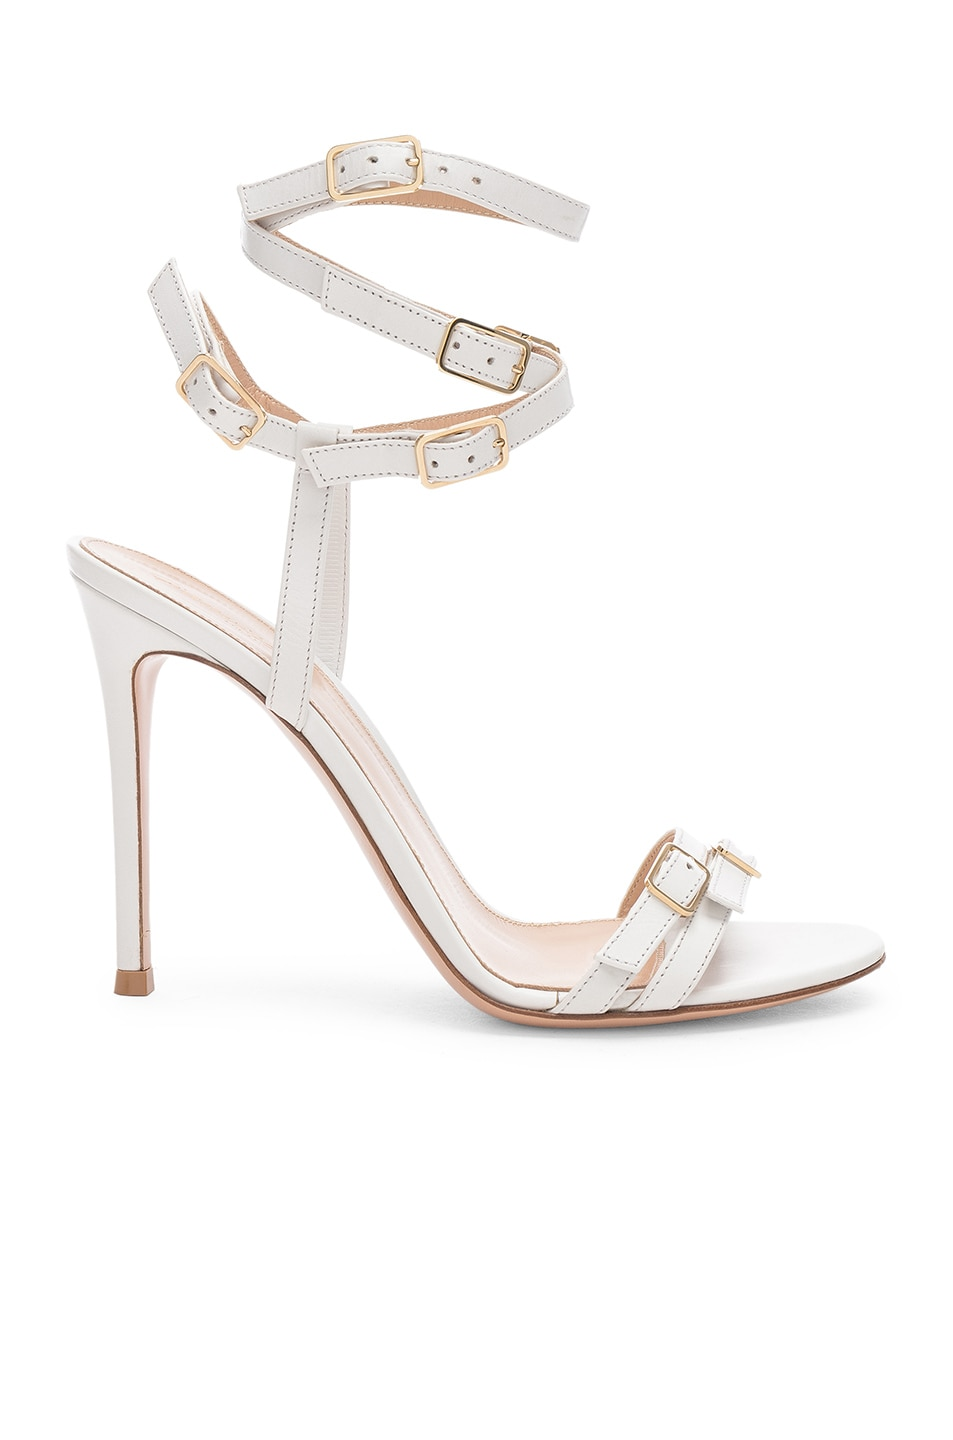 Image 1 of Gianvito Rossi Cassandra Buckle Strappy Heel in White